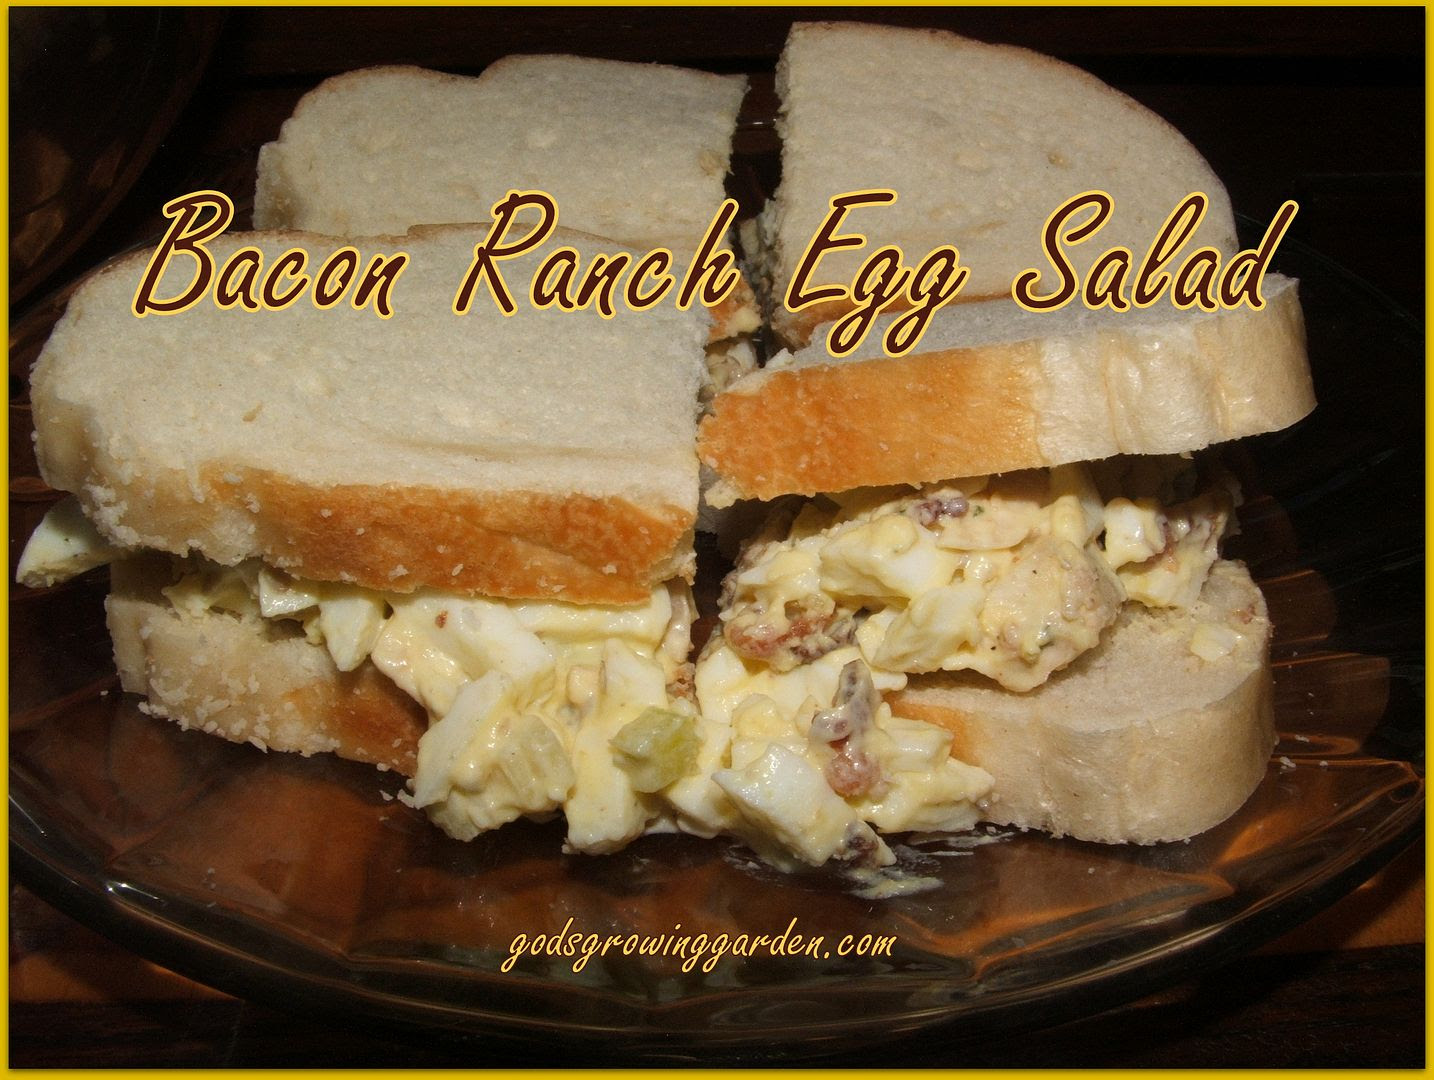 Bacon Ranch Egg Salad by Angie Ouellette-Tower for godsgrowinggarden.com photo 011_zps88345690.jpg